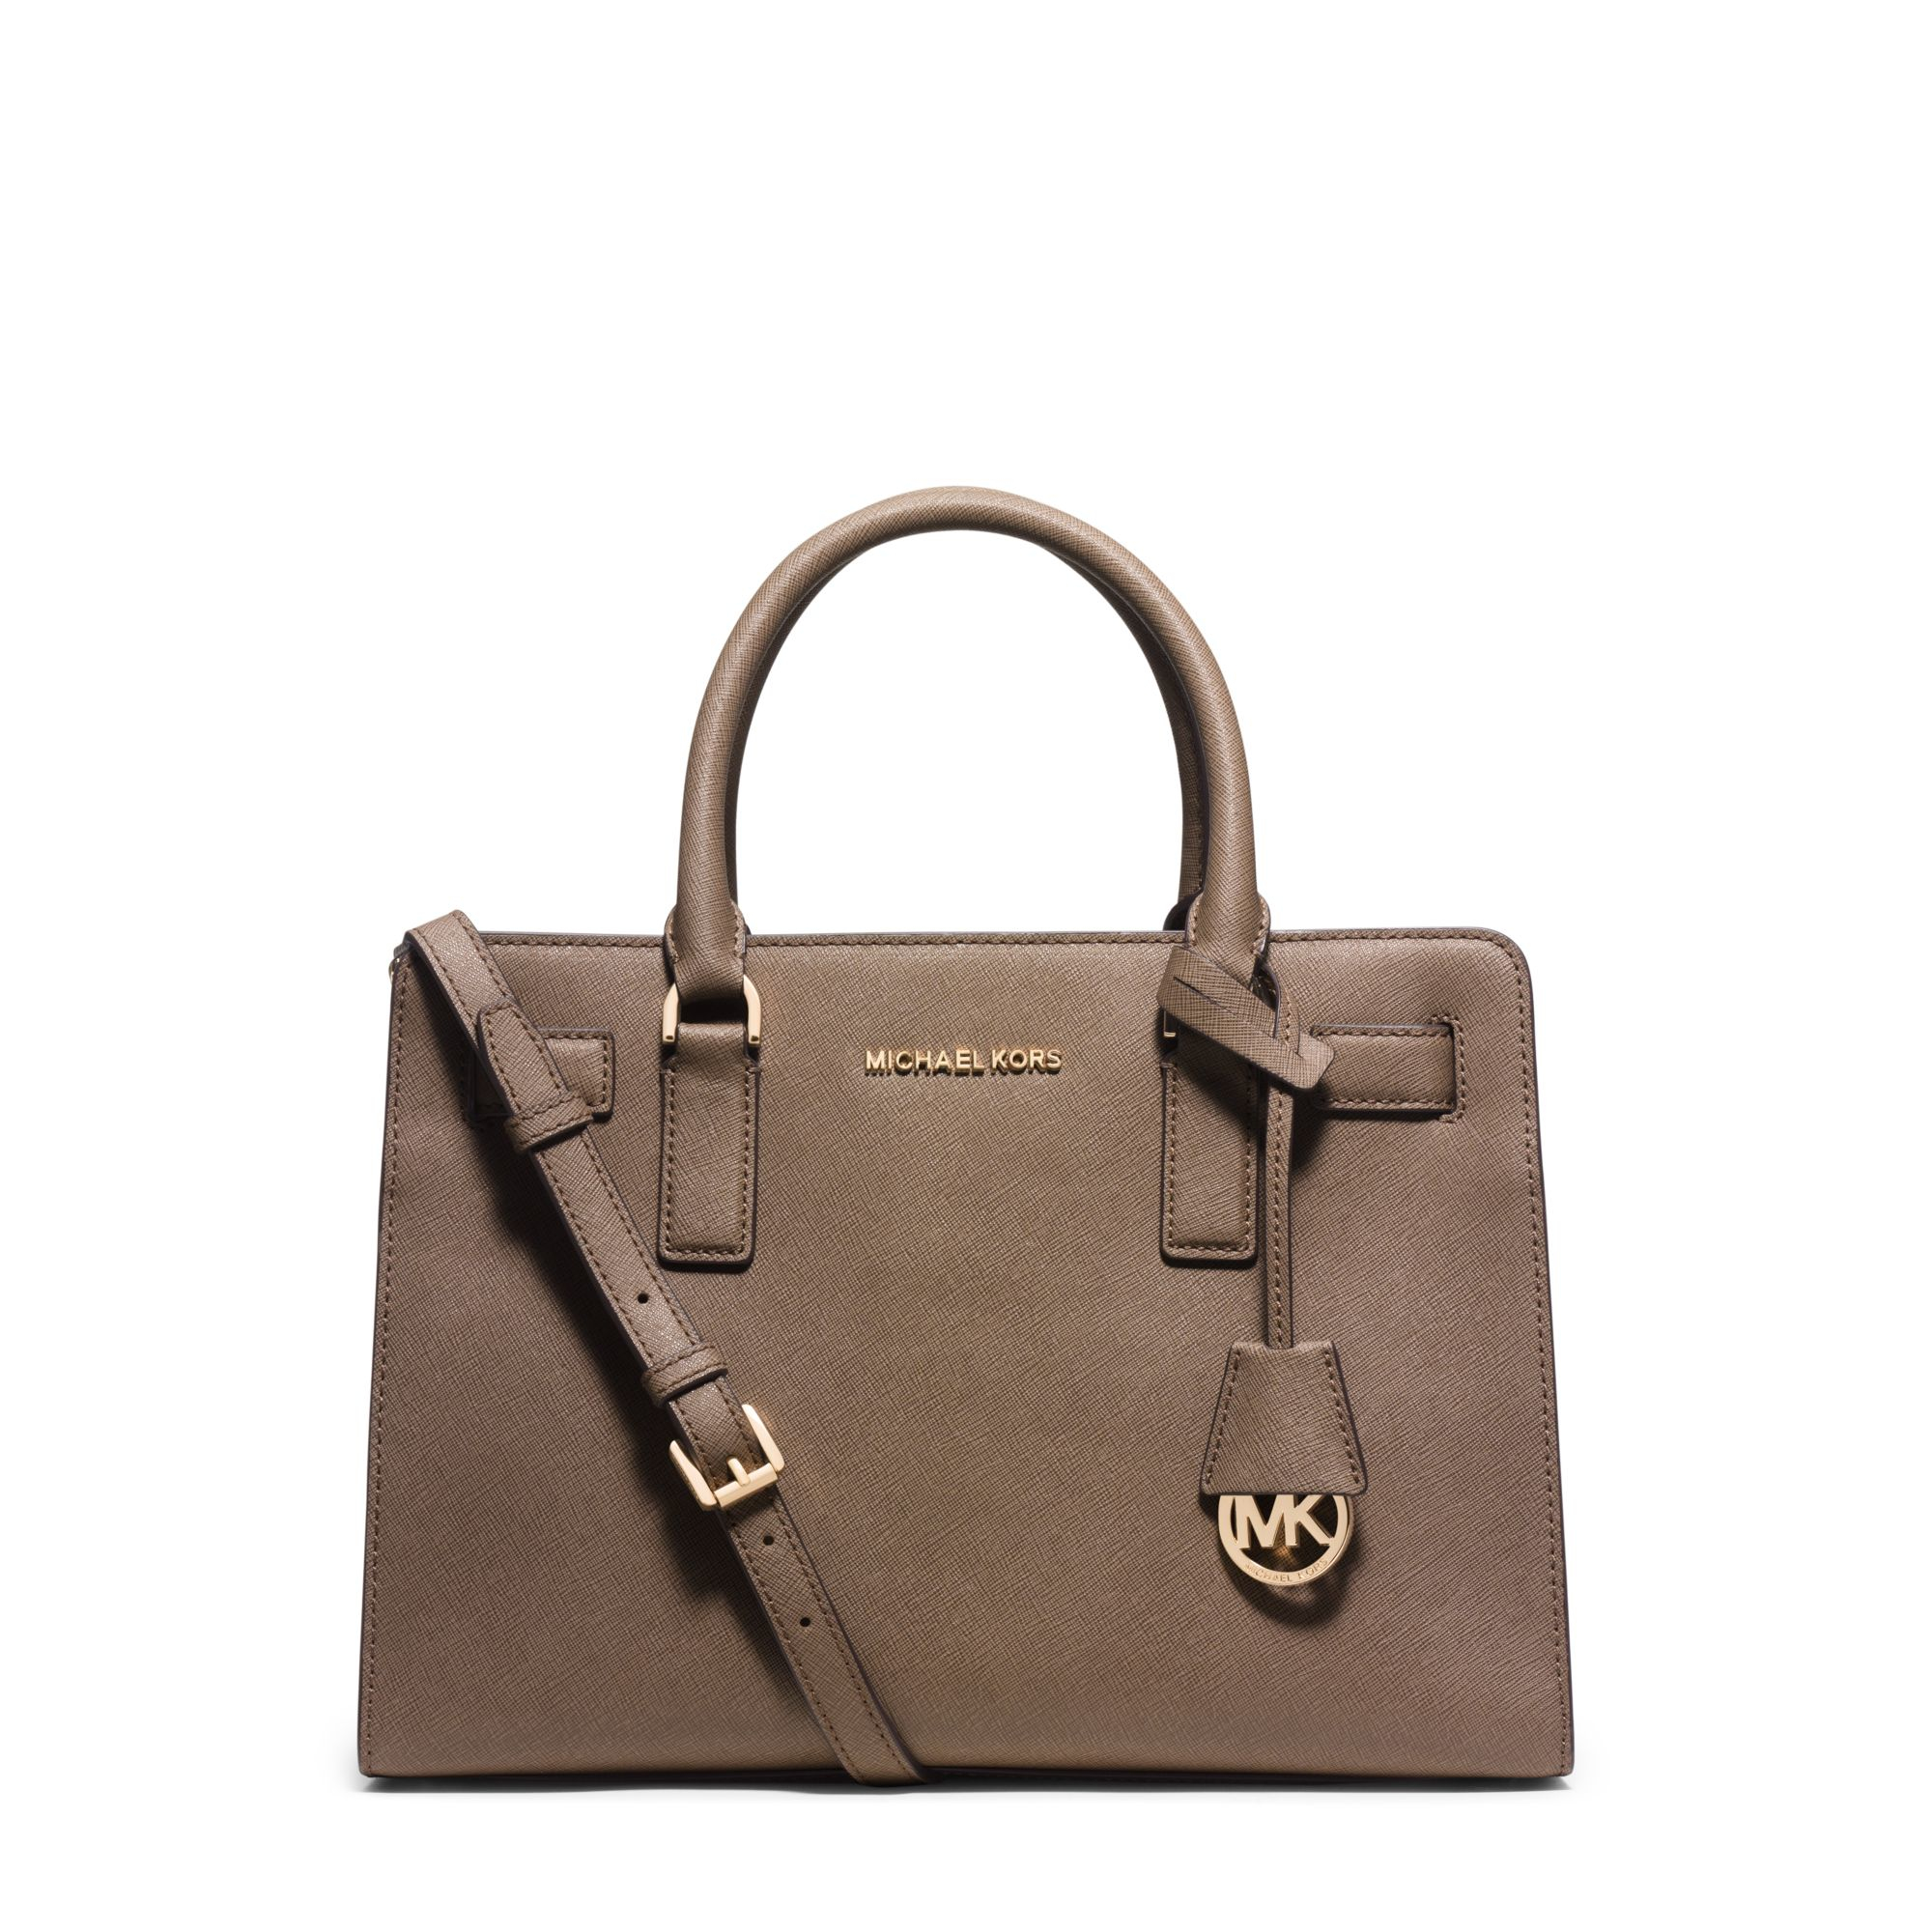 michael kors dillon saffiano leather satchel in brown lyst. Black Bedroom Furniture Sets. Home Design Ideas